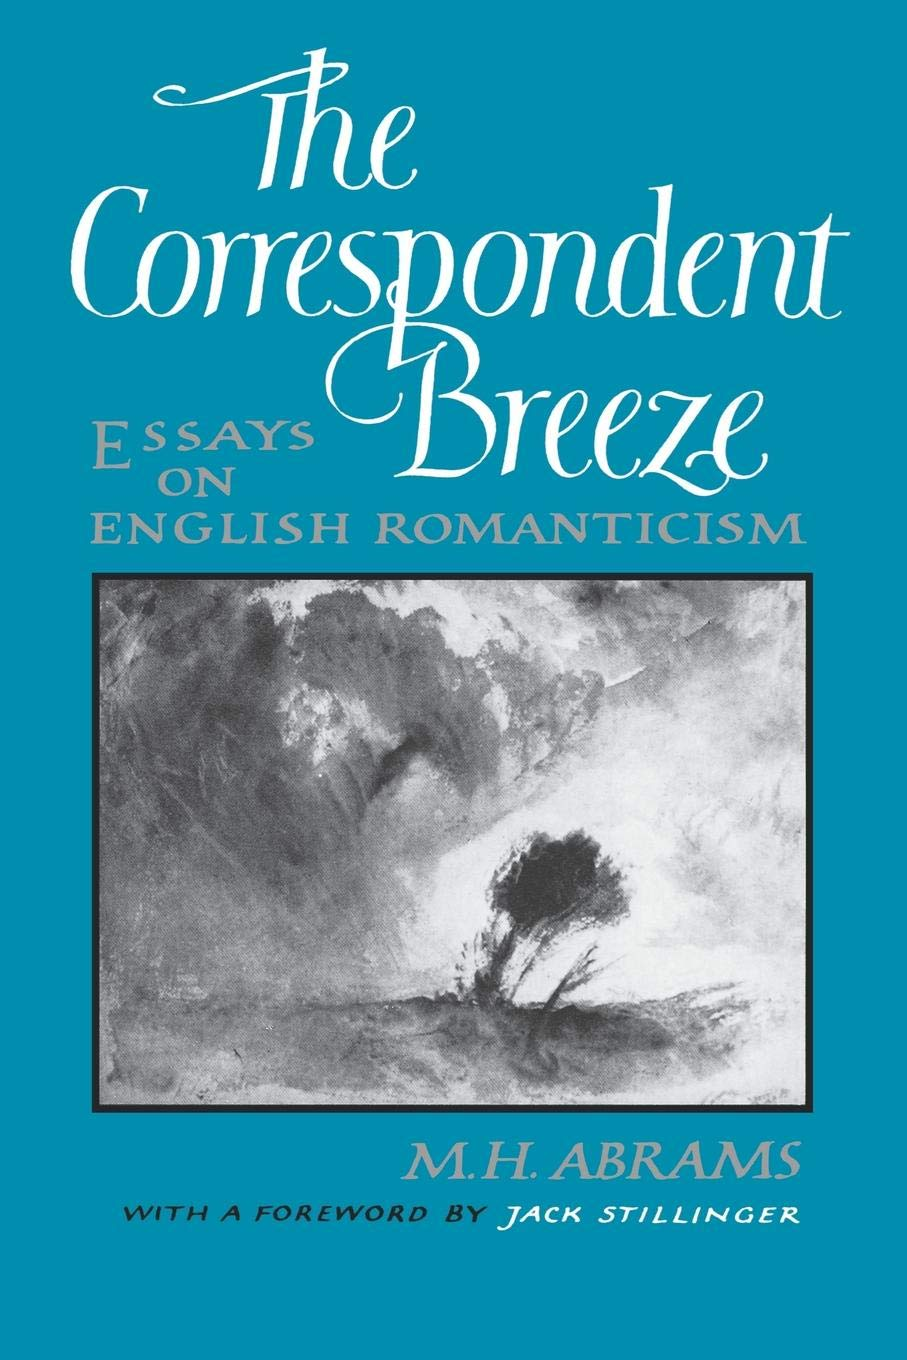 Amazoncom The Correspondent Breeze Essays On English Romanticism  Amazoncom The Correspondent Breeze Essays On English Romanticism   M H Abrams Jack Stillinger Phd Books Research Essay Proposal Example also Business Plan Writers In Bangalore  Expository Essay Thesis Statement Examples